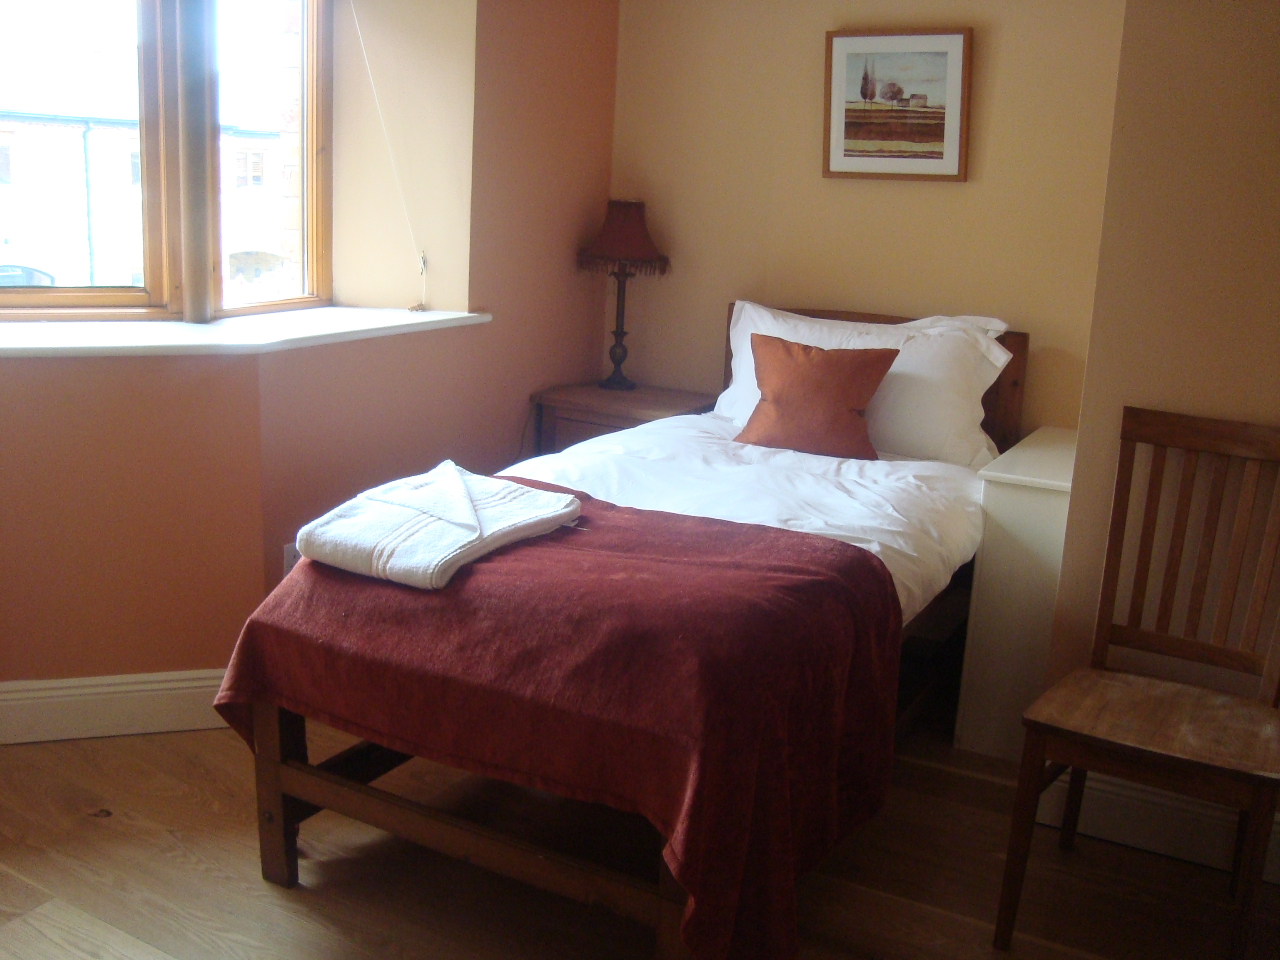 Single Bedroom at Decoy Country Cottages, Nr Navan, Co Meath